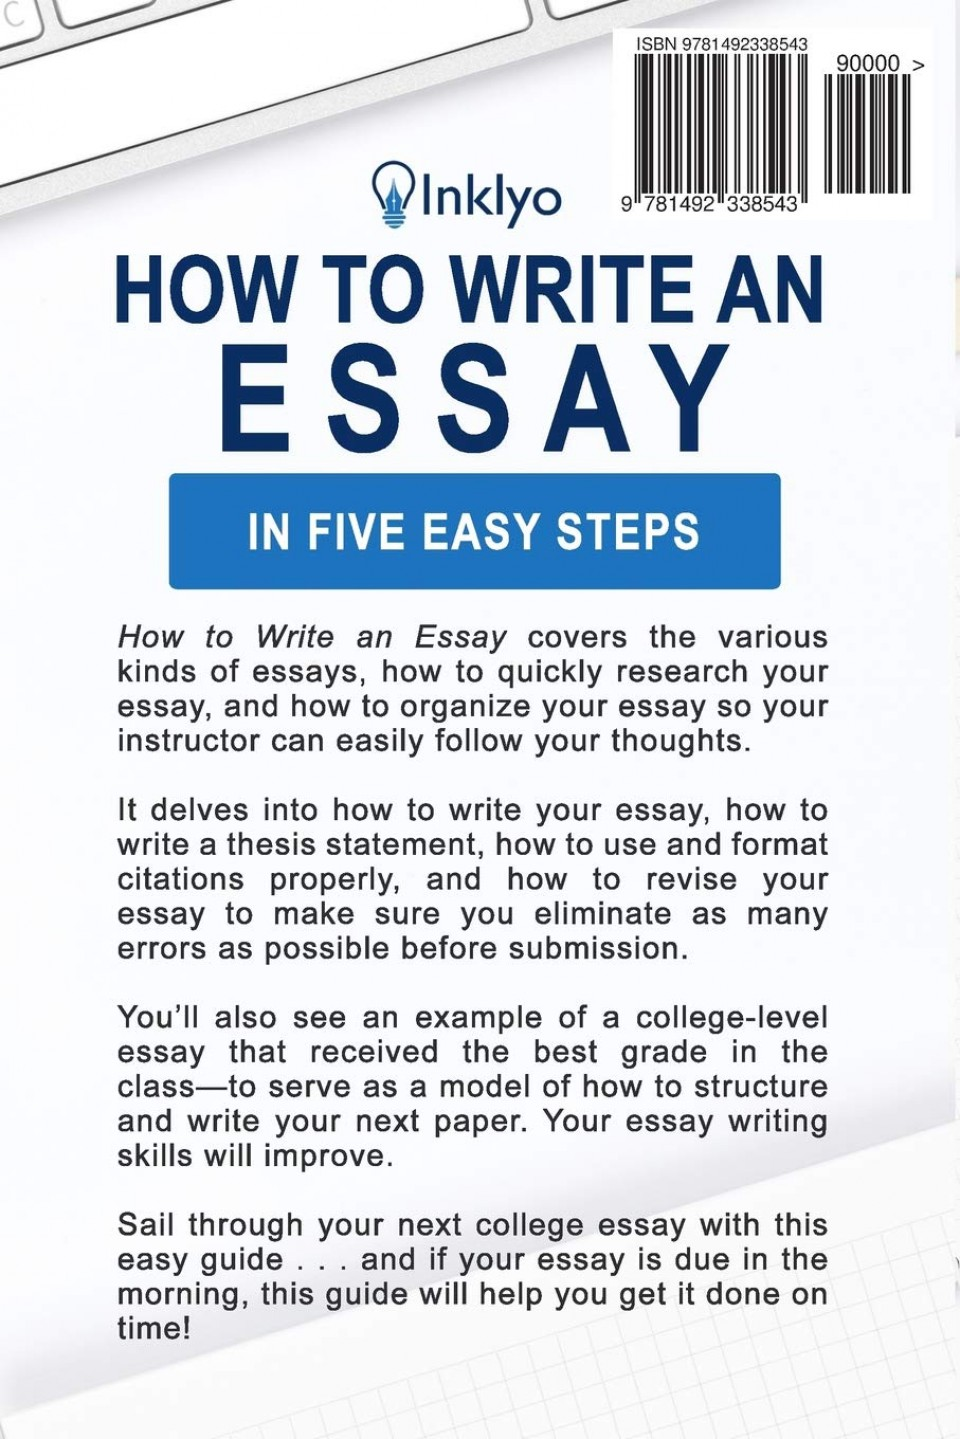 003 How To Write Essay Example Archaicawful A History Research Outline Introduction 960